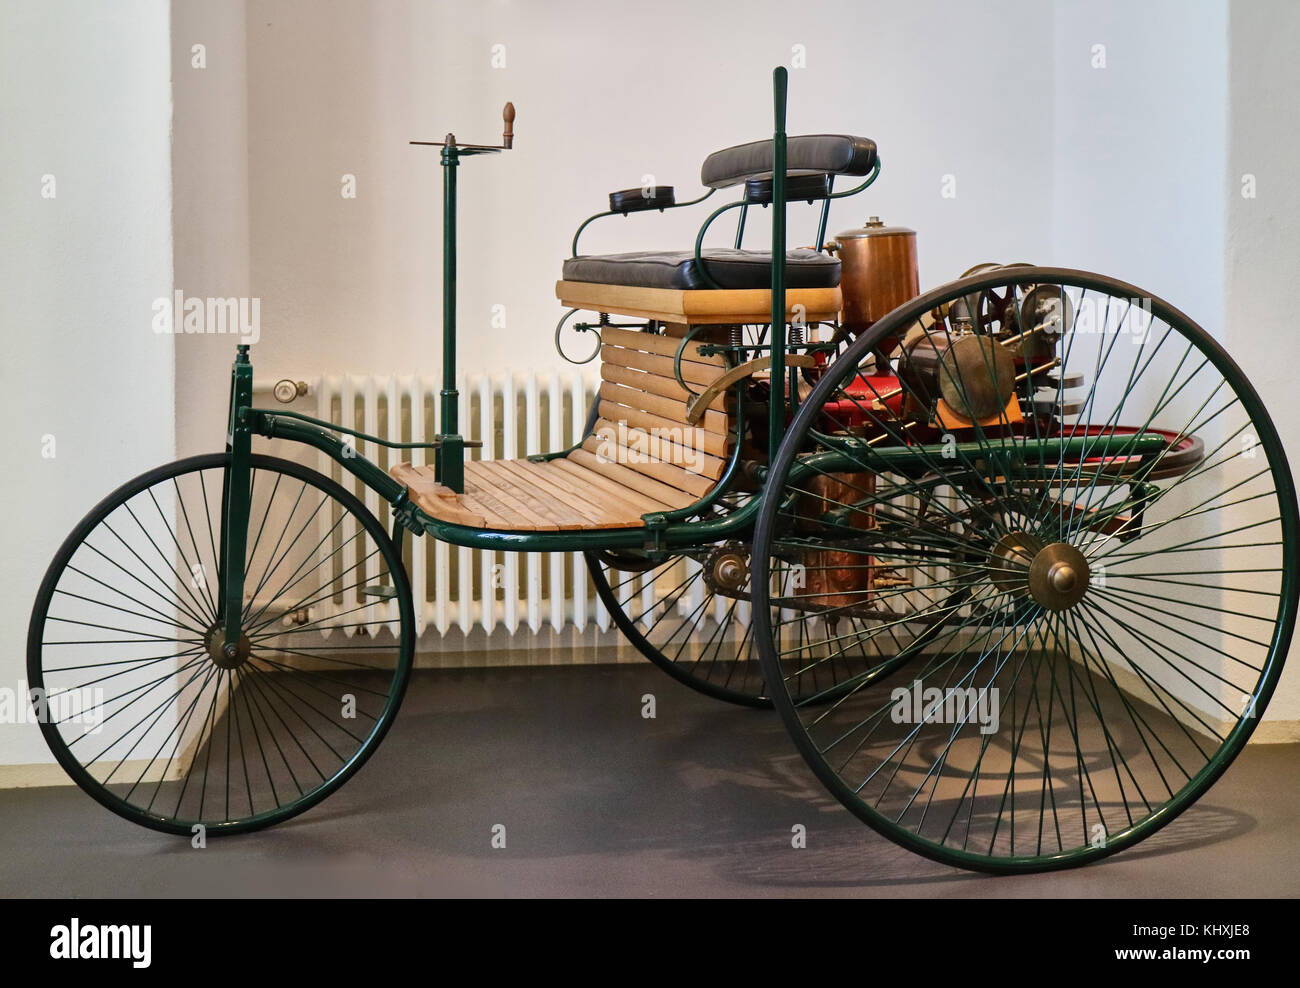 Europe, Germany, Saxony, Dresden city, The Transport museum, First car of Carl Benz, Benz Patent Motorcar 1886 - Stock Image